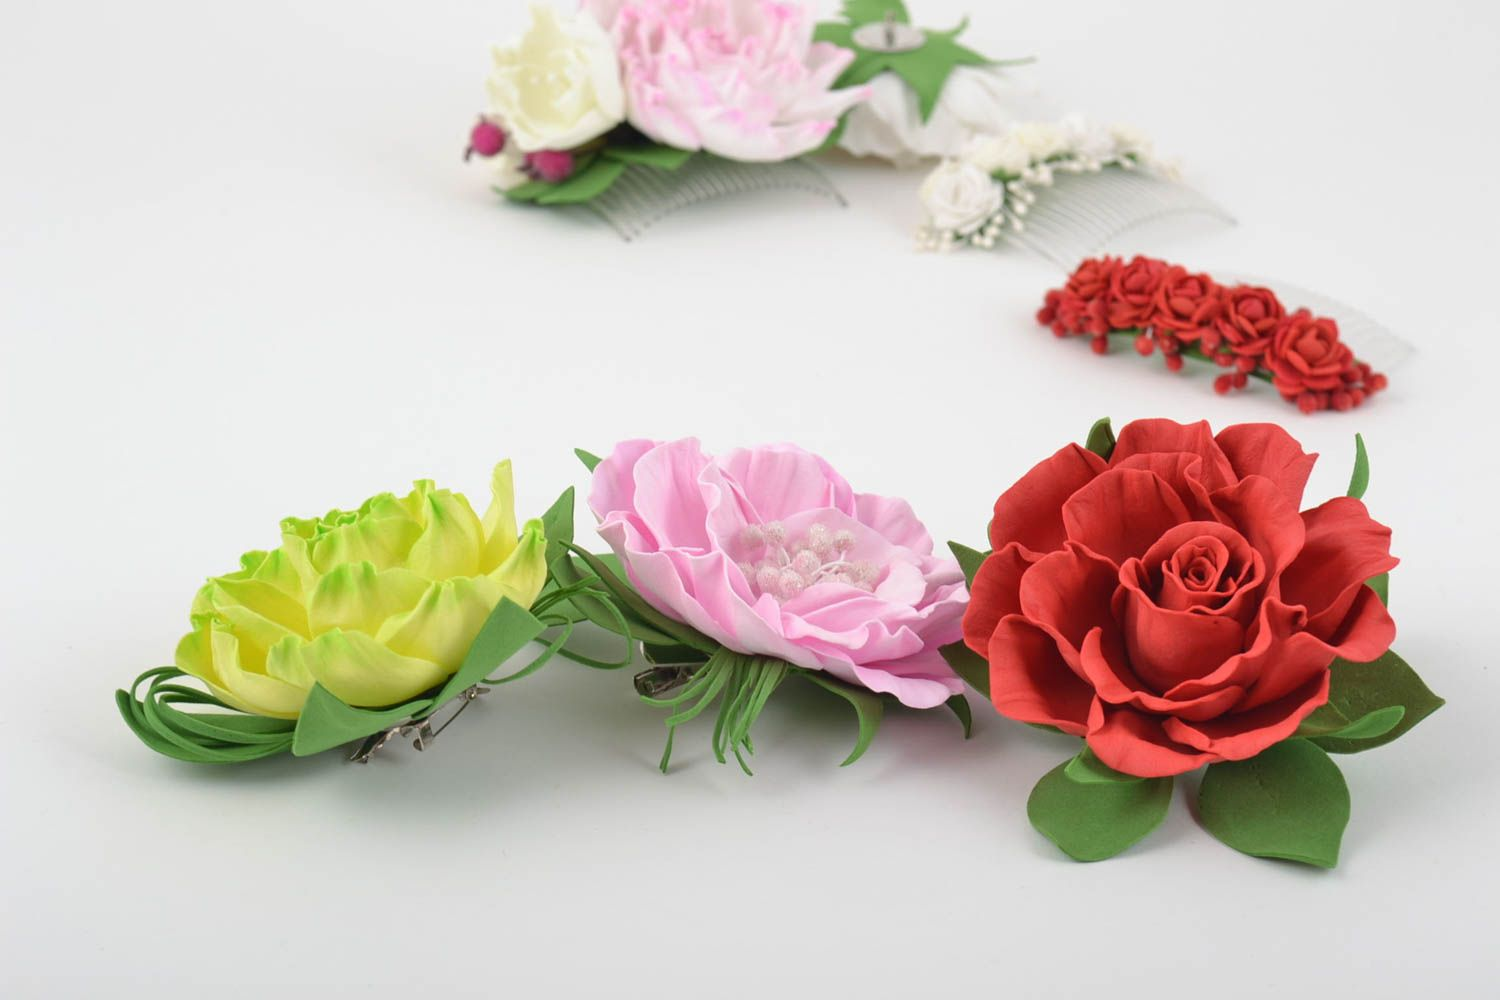 Handmade flower brooches flower hair clips handcrafted jewelry women accessories photo 1